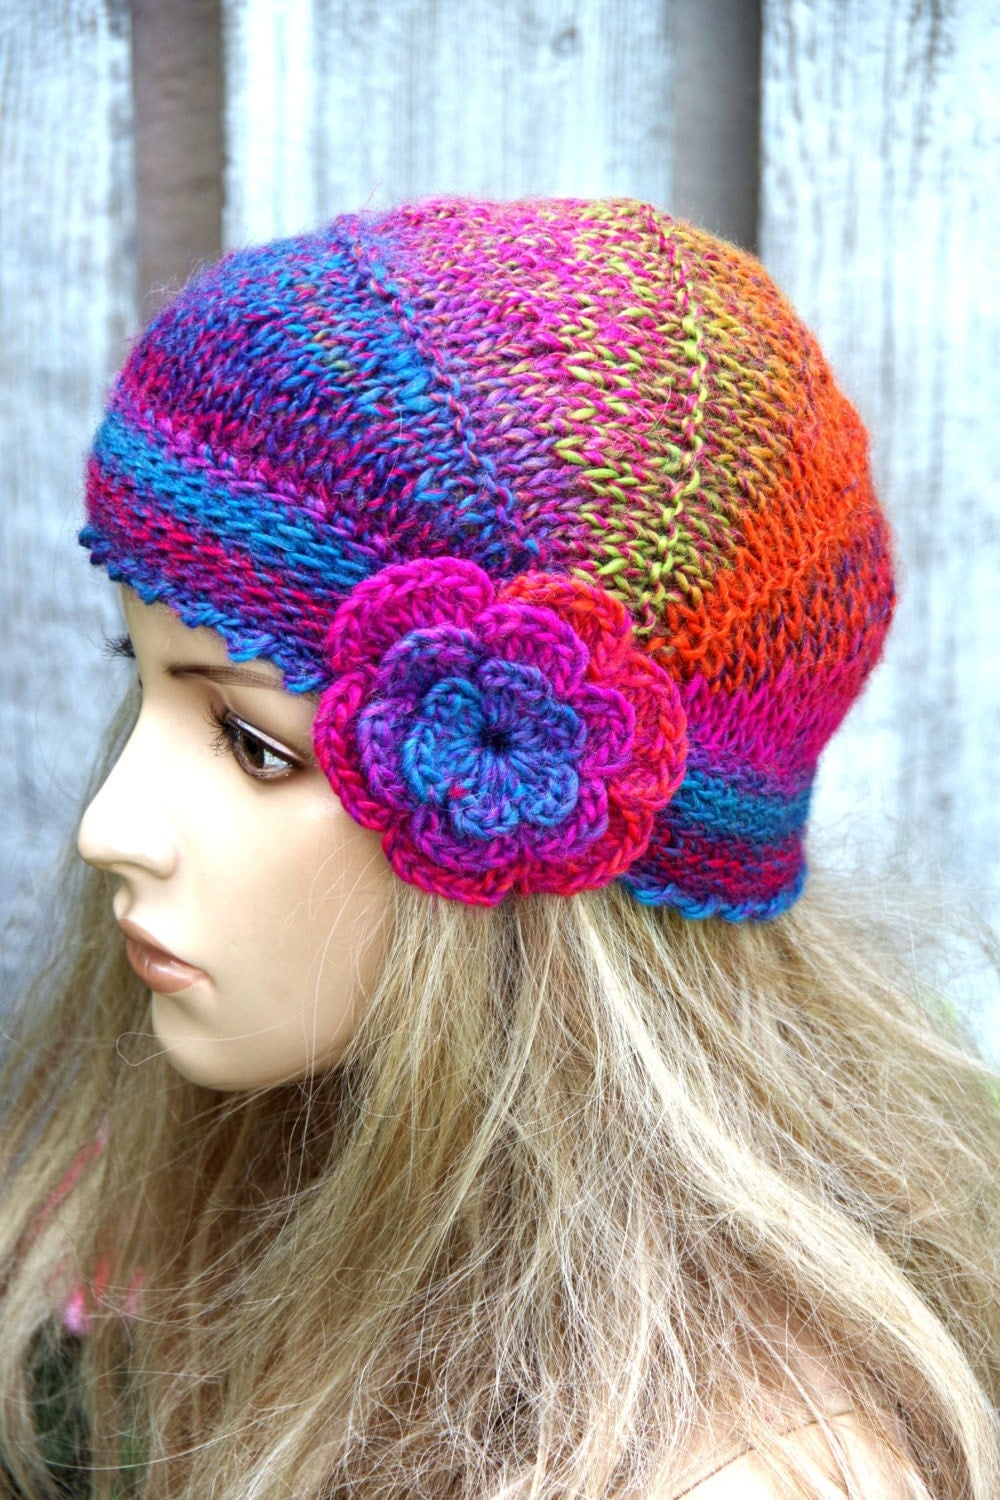 Knitting Pattern For Beanie With Flower : Knitted flower hat Colorful Knitted Beanie Womens Knitted